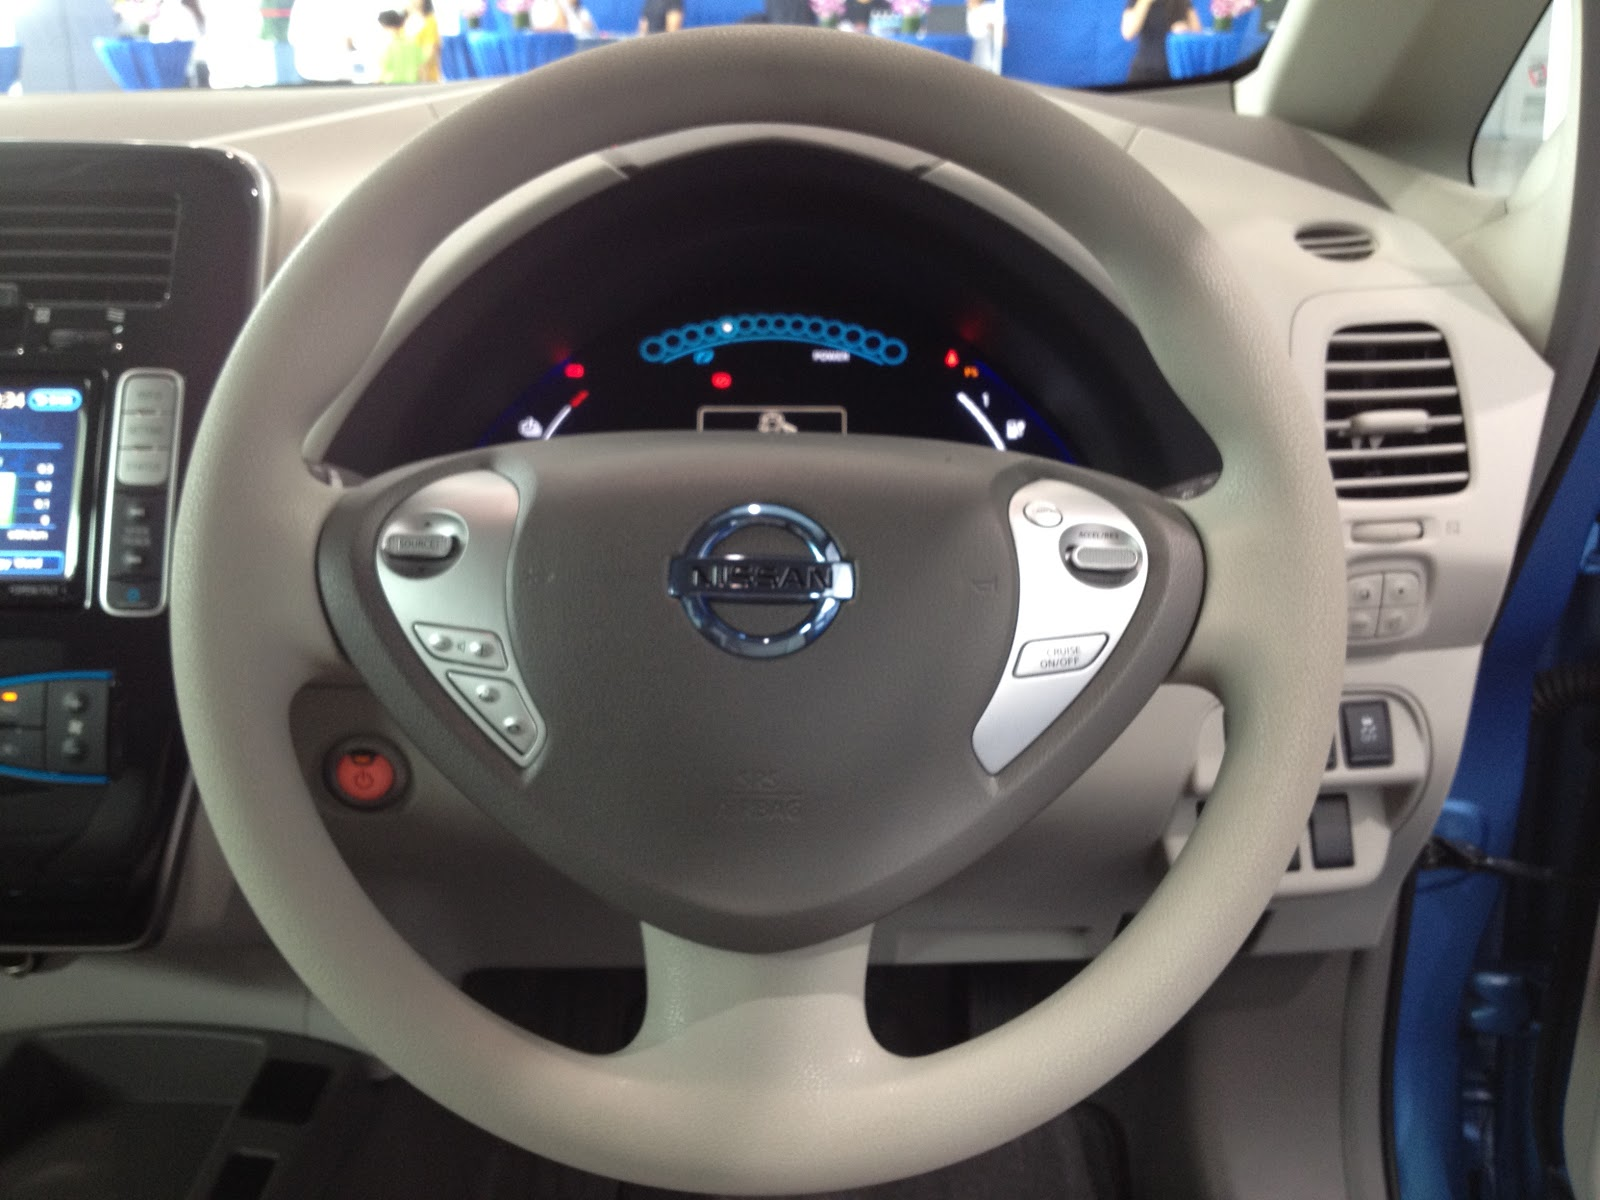 The Nissan Leaf Electric Car For Everyone Kensomuse Wire Connector Plug Motorcycle Marine 10cm Wirein Wiring Harness On Right Side Below Steering Youll Find A Few More Buttons